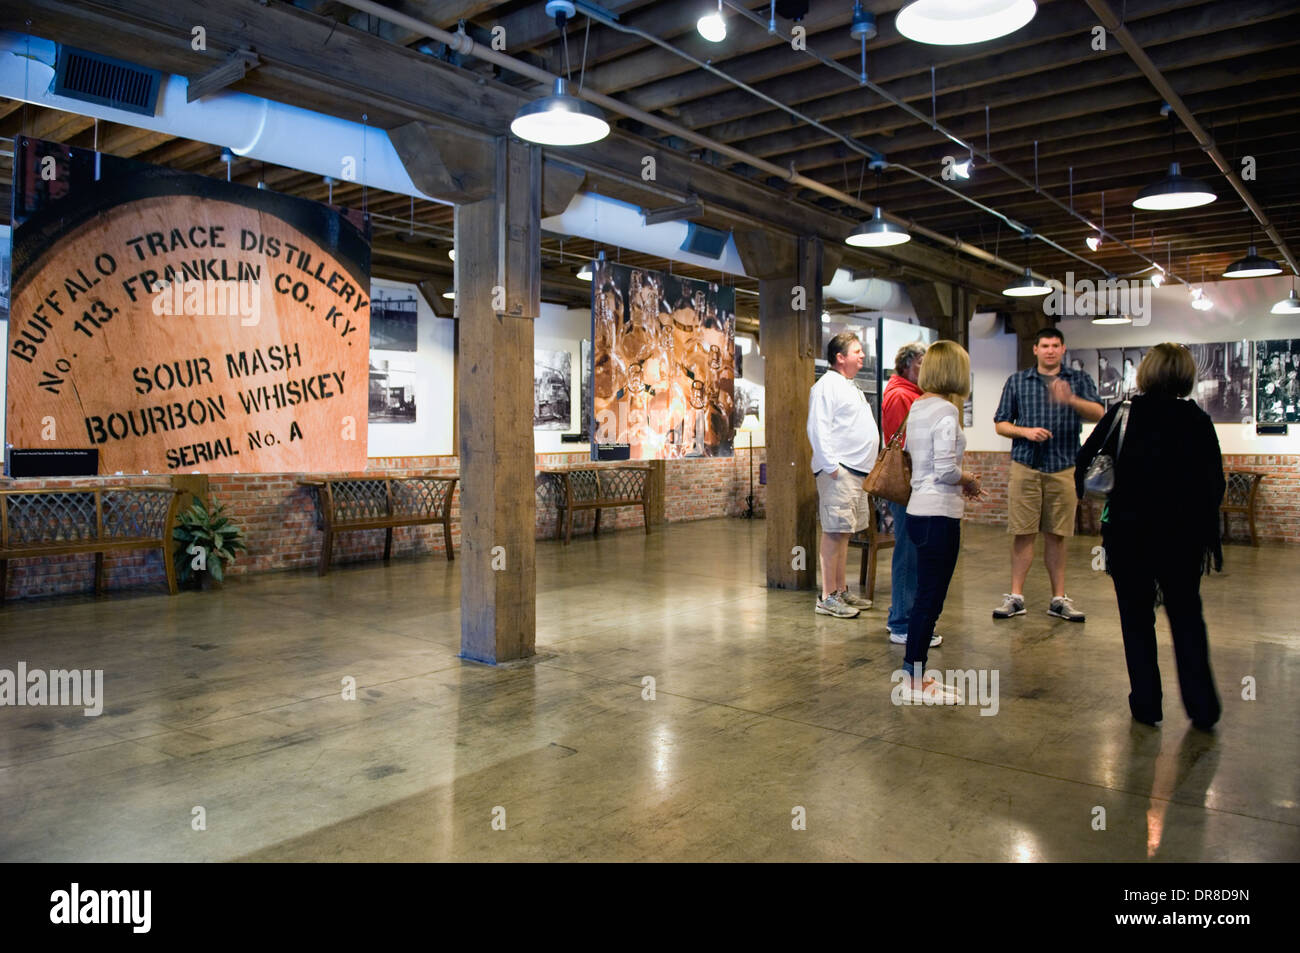 Tourists in the Buffalo Trace Distillery Visitor Center in Frankfort, Kentucky - Stock Image